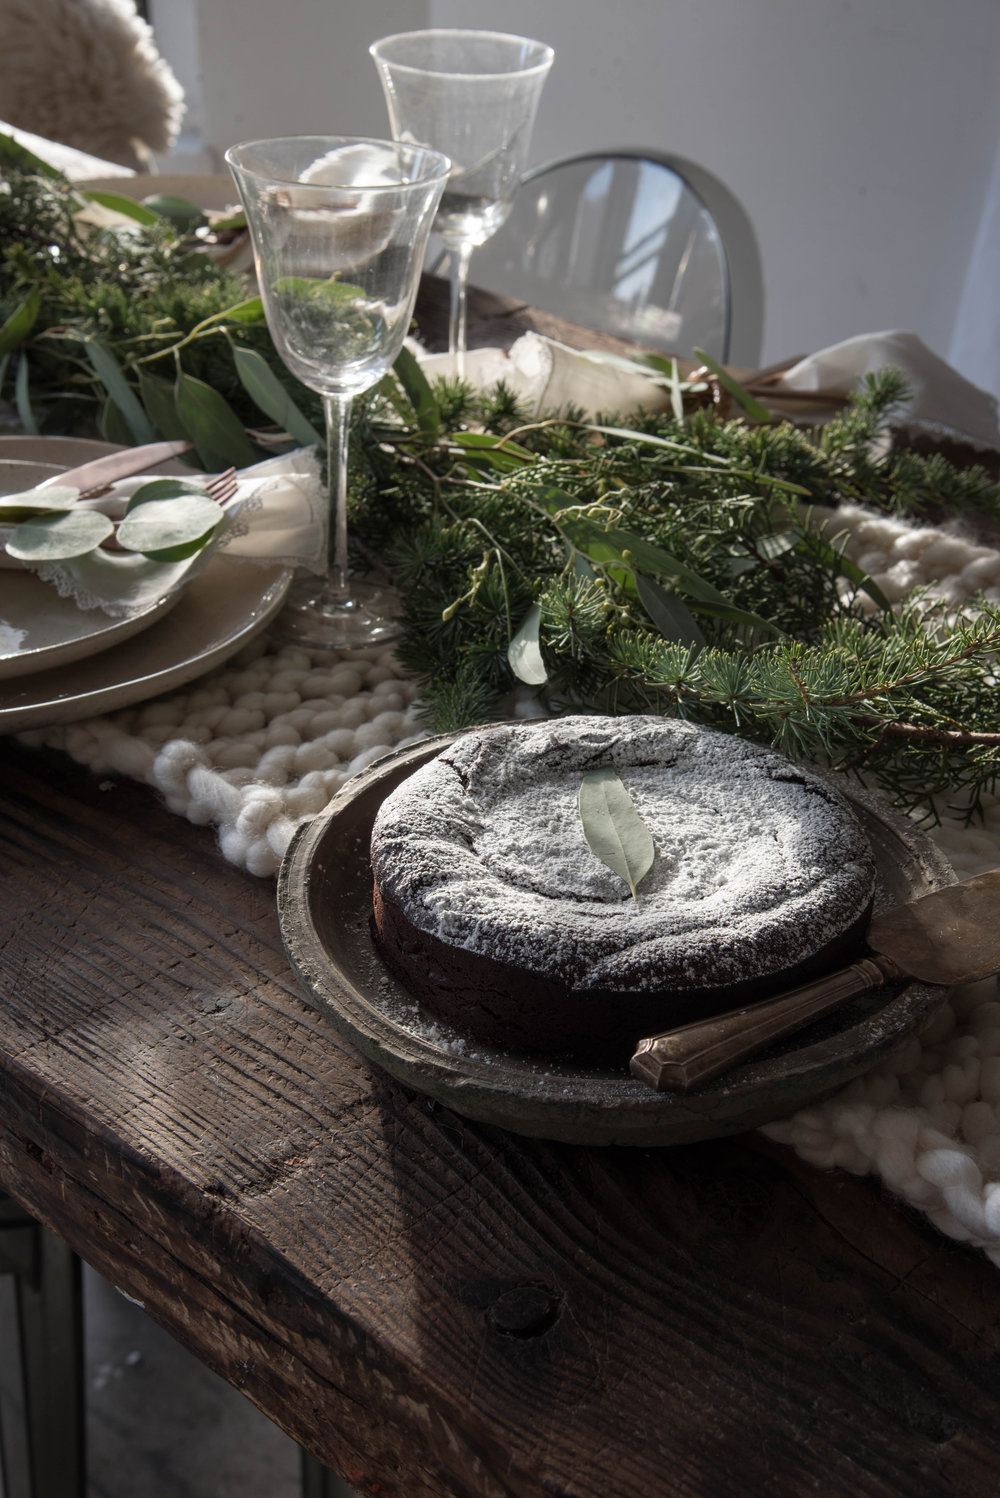 ROSE & IVY Journal Celebrate the Season | Chocolate Peppermint Flourless Cake